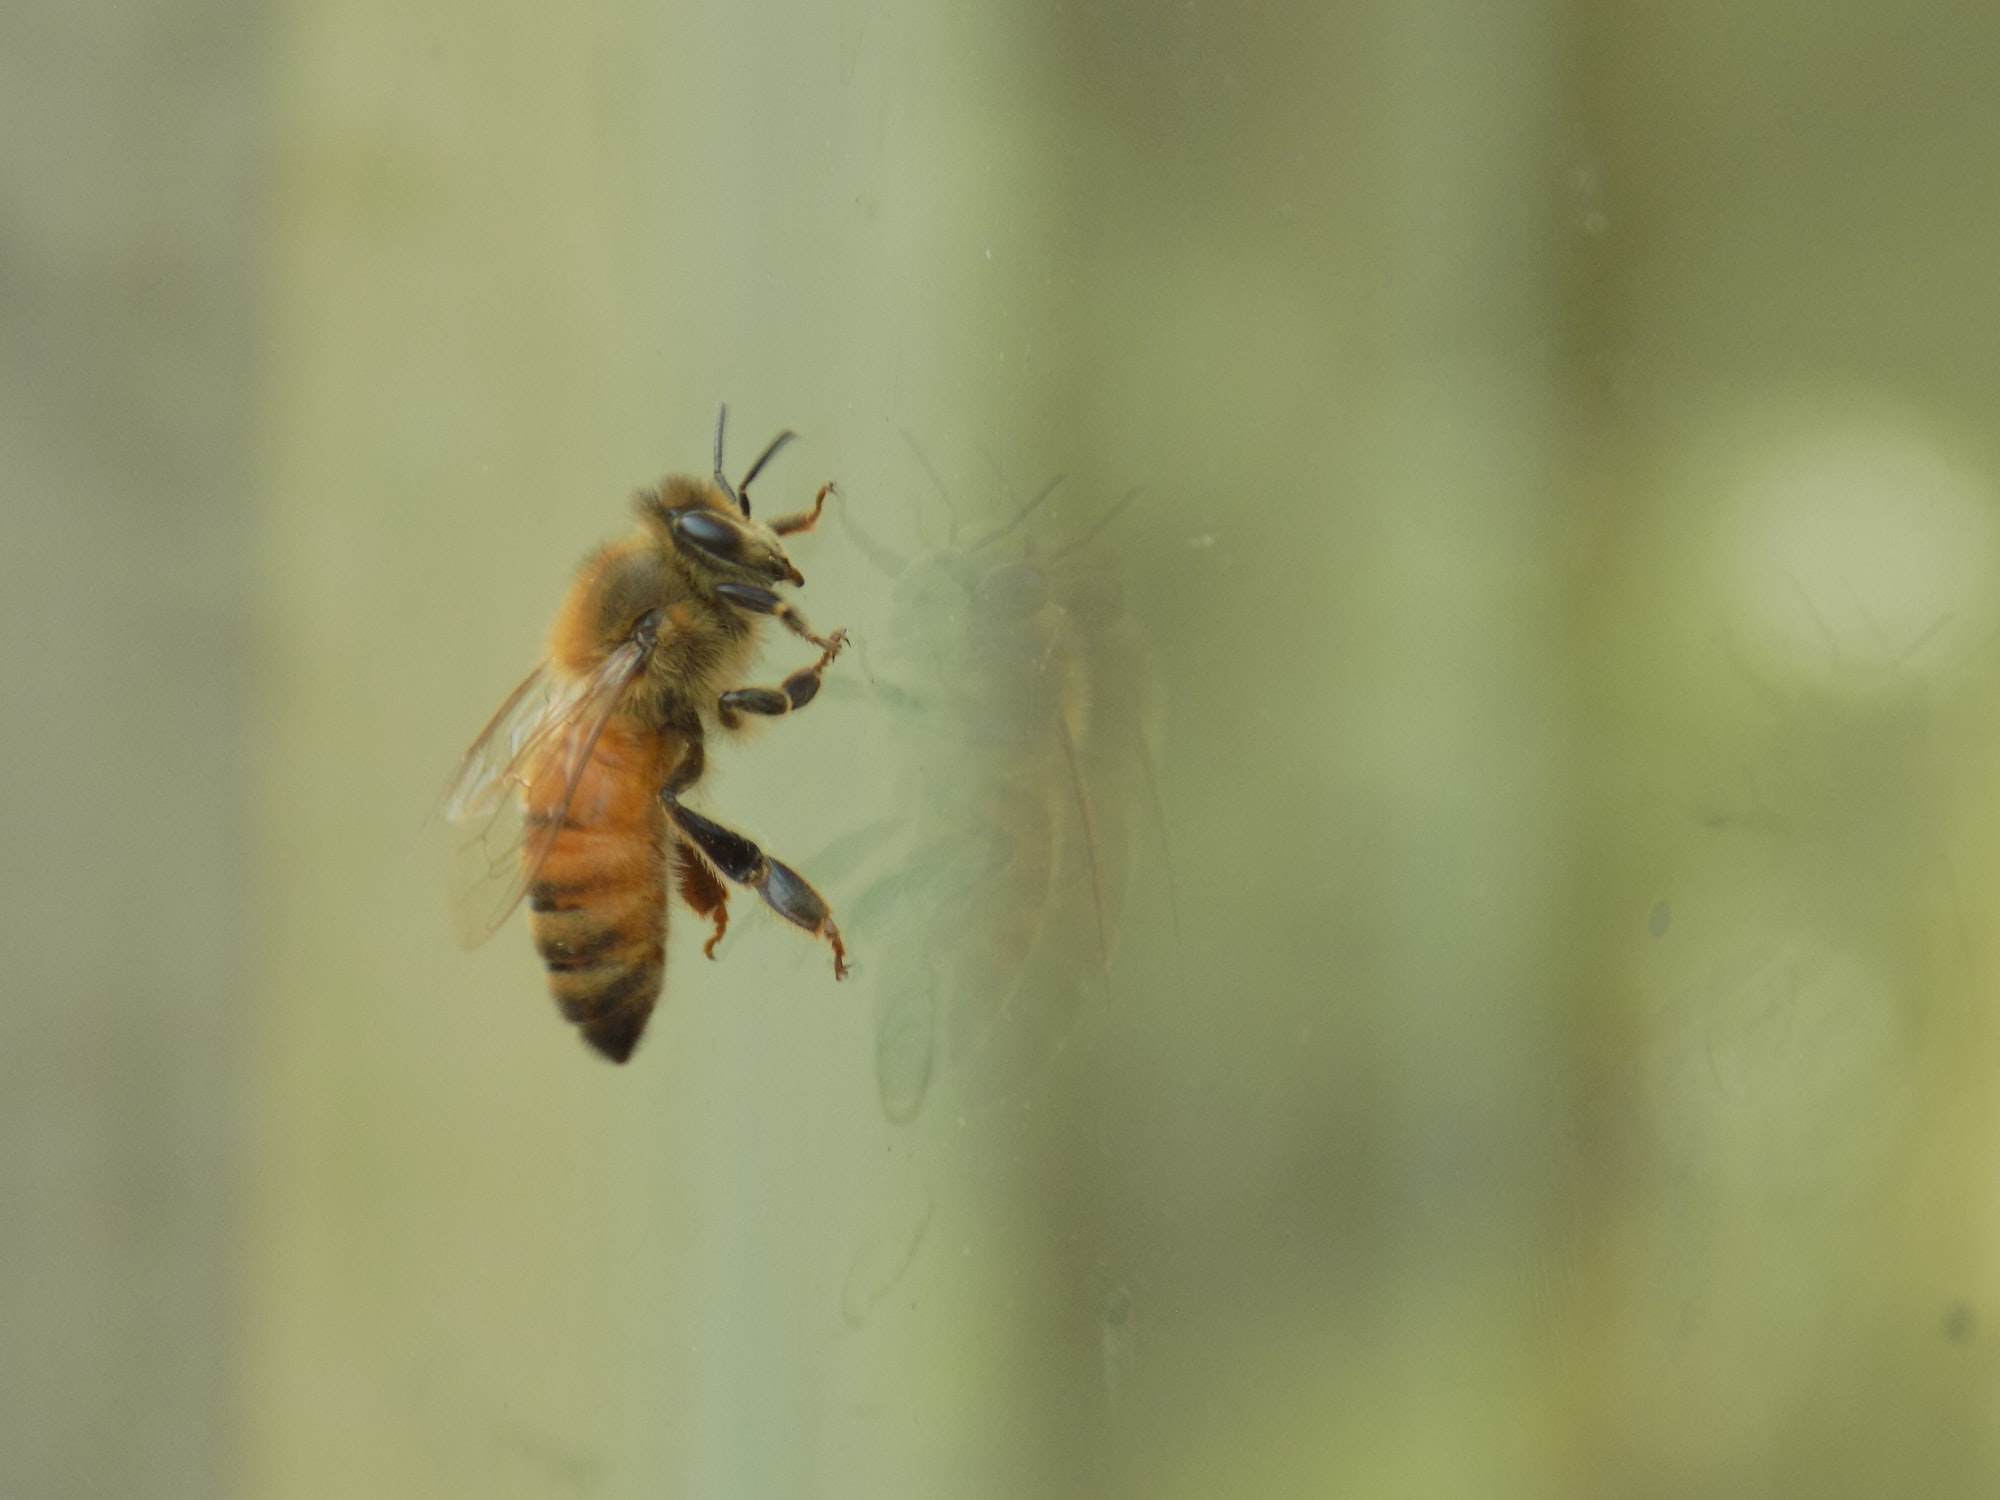 How Dangerous Can a Wasp Be?